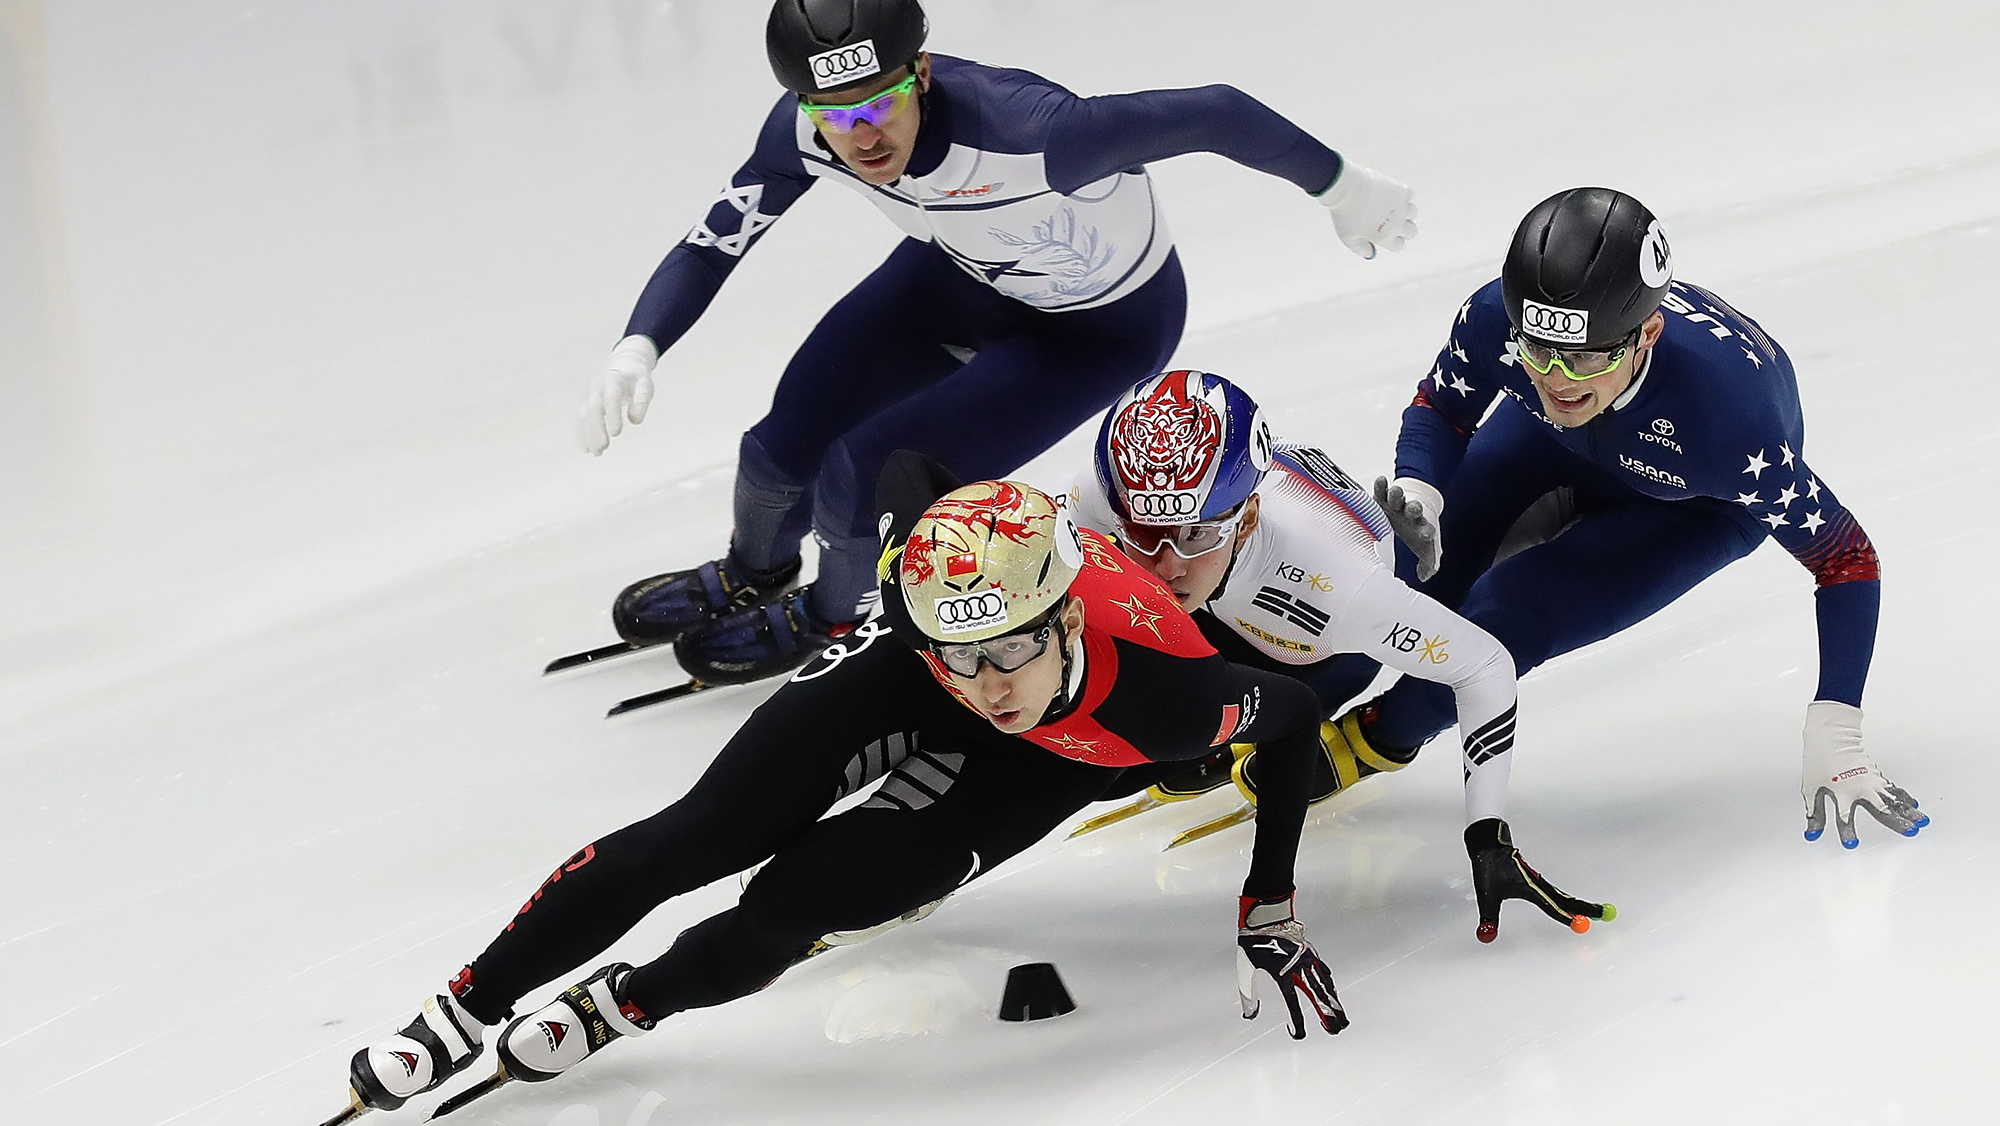 Winter Olympics: Where is South Korea?